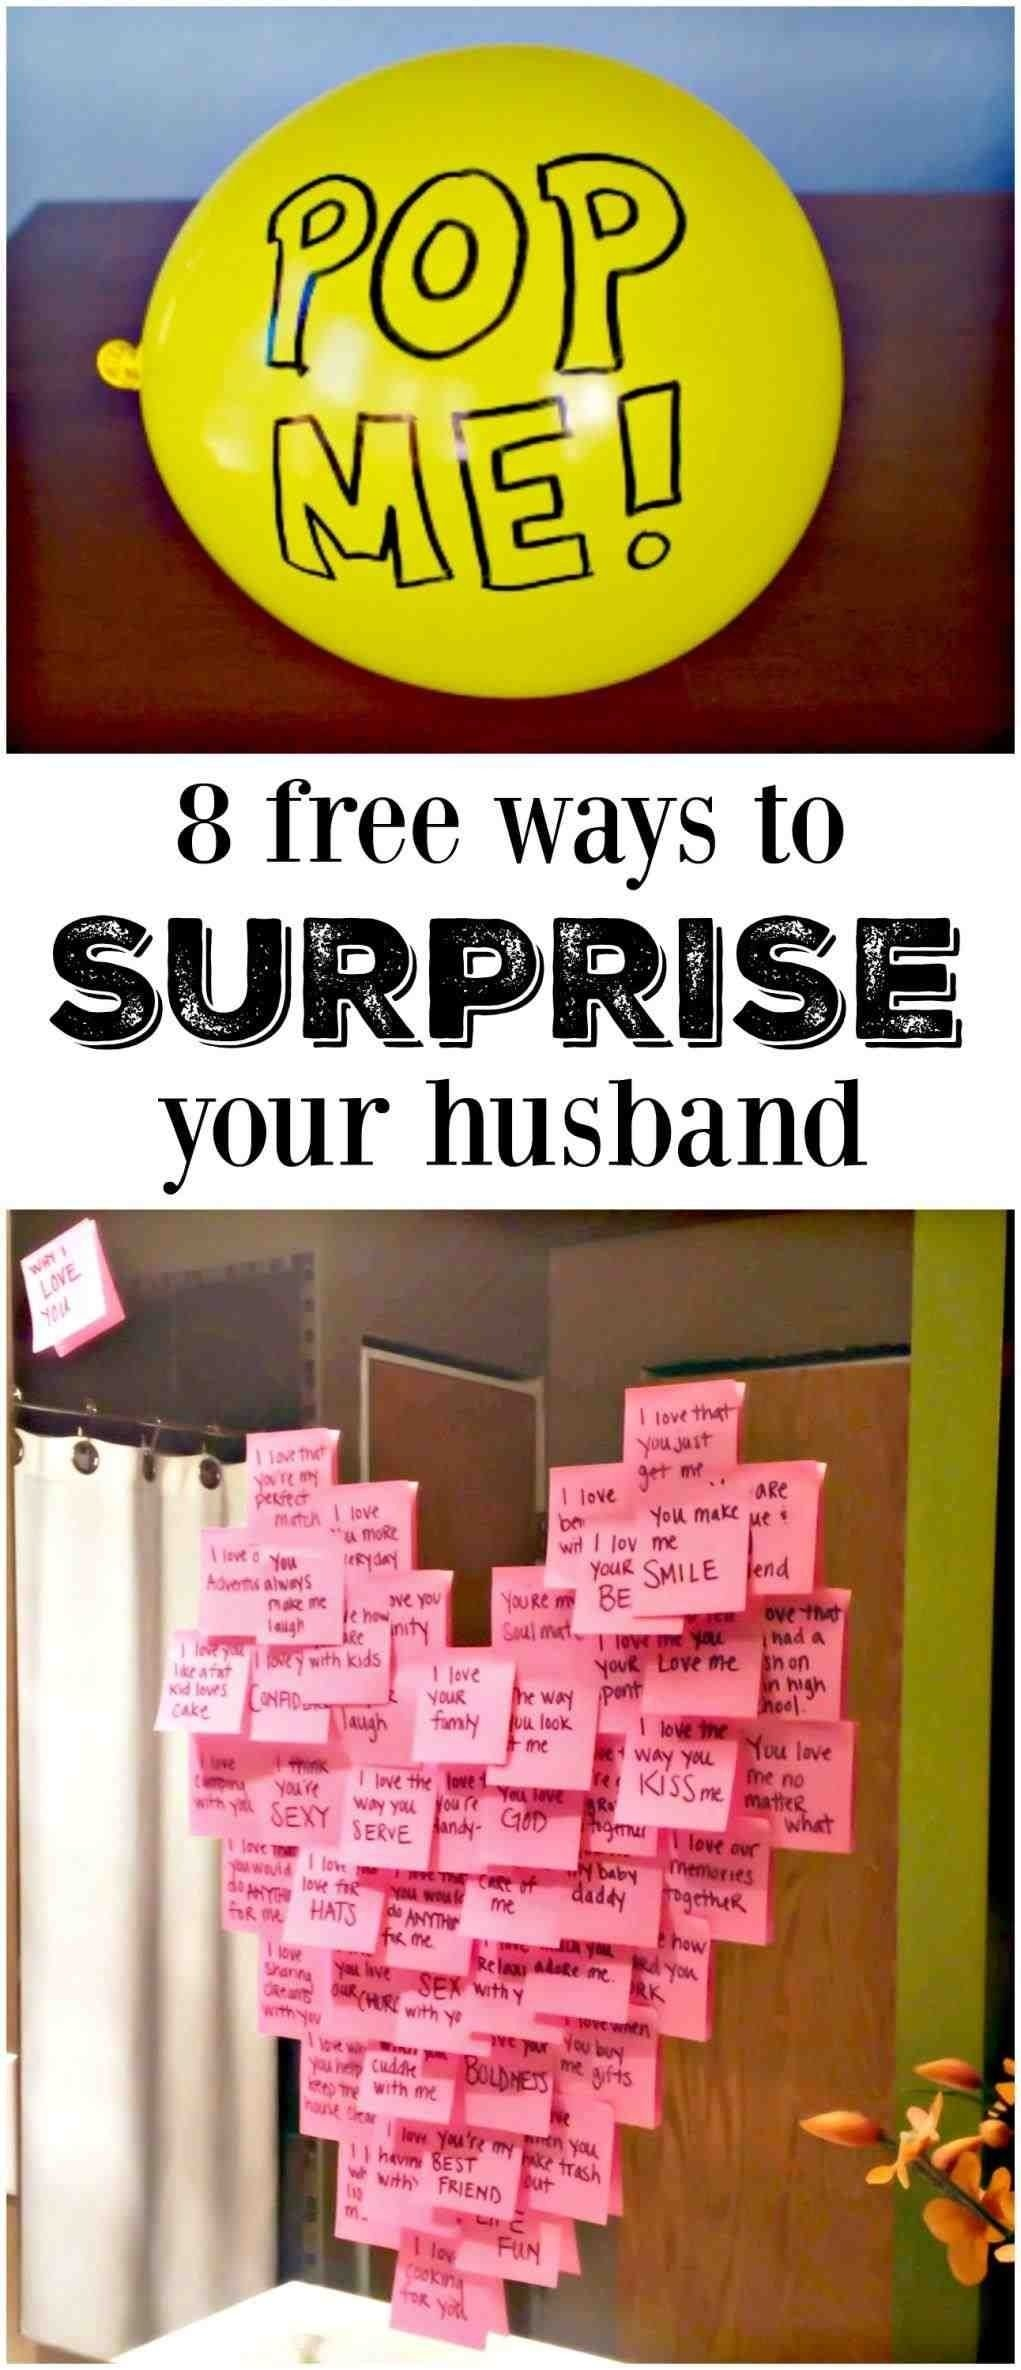 10 Famous Surprise Birthday Ideas For Husband new romantic birthday room decoration for husband at homelivings 2020